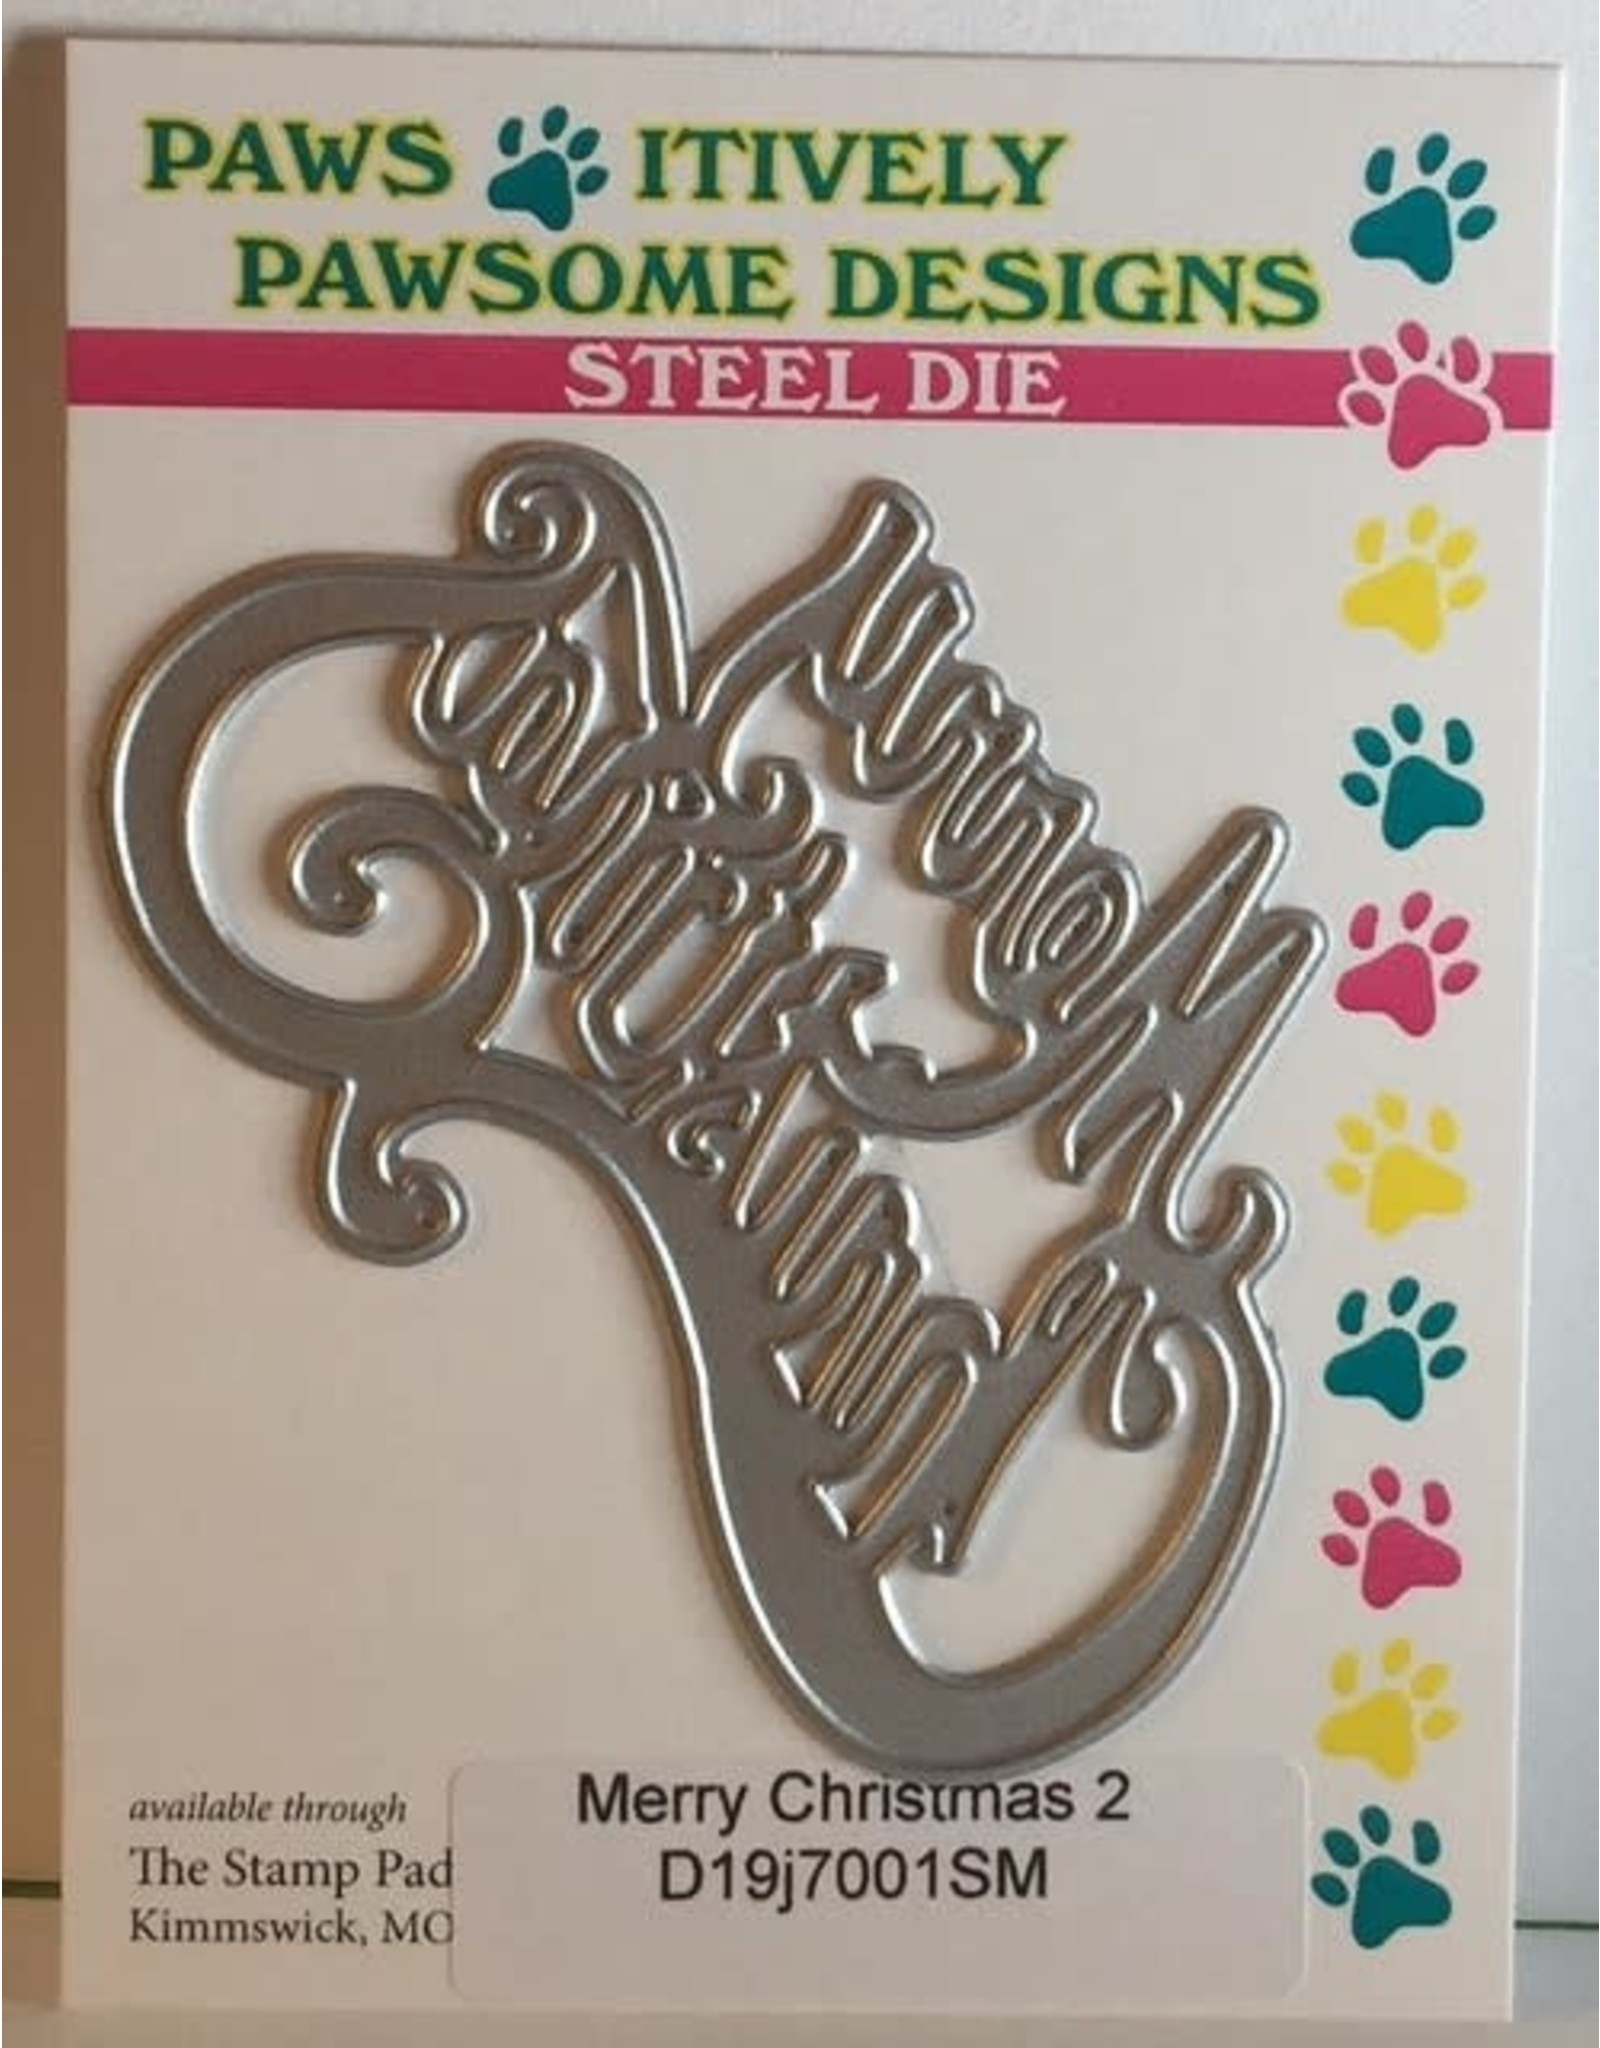 Paws-Itively Pawsome Designs Merry Christmas 2 - Die